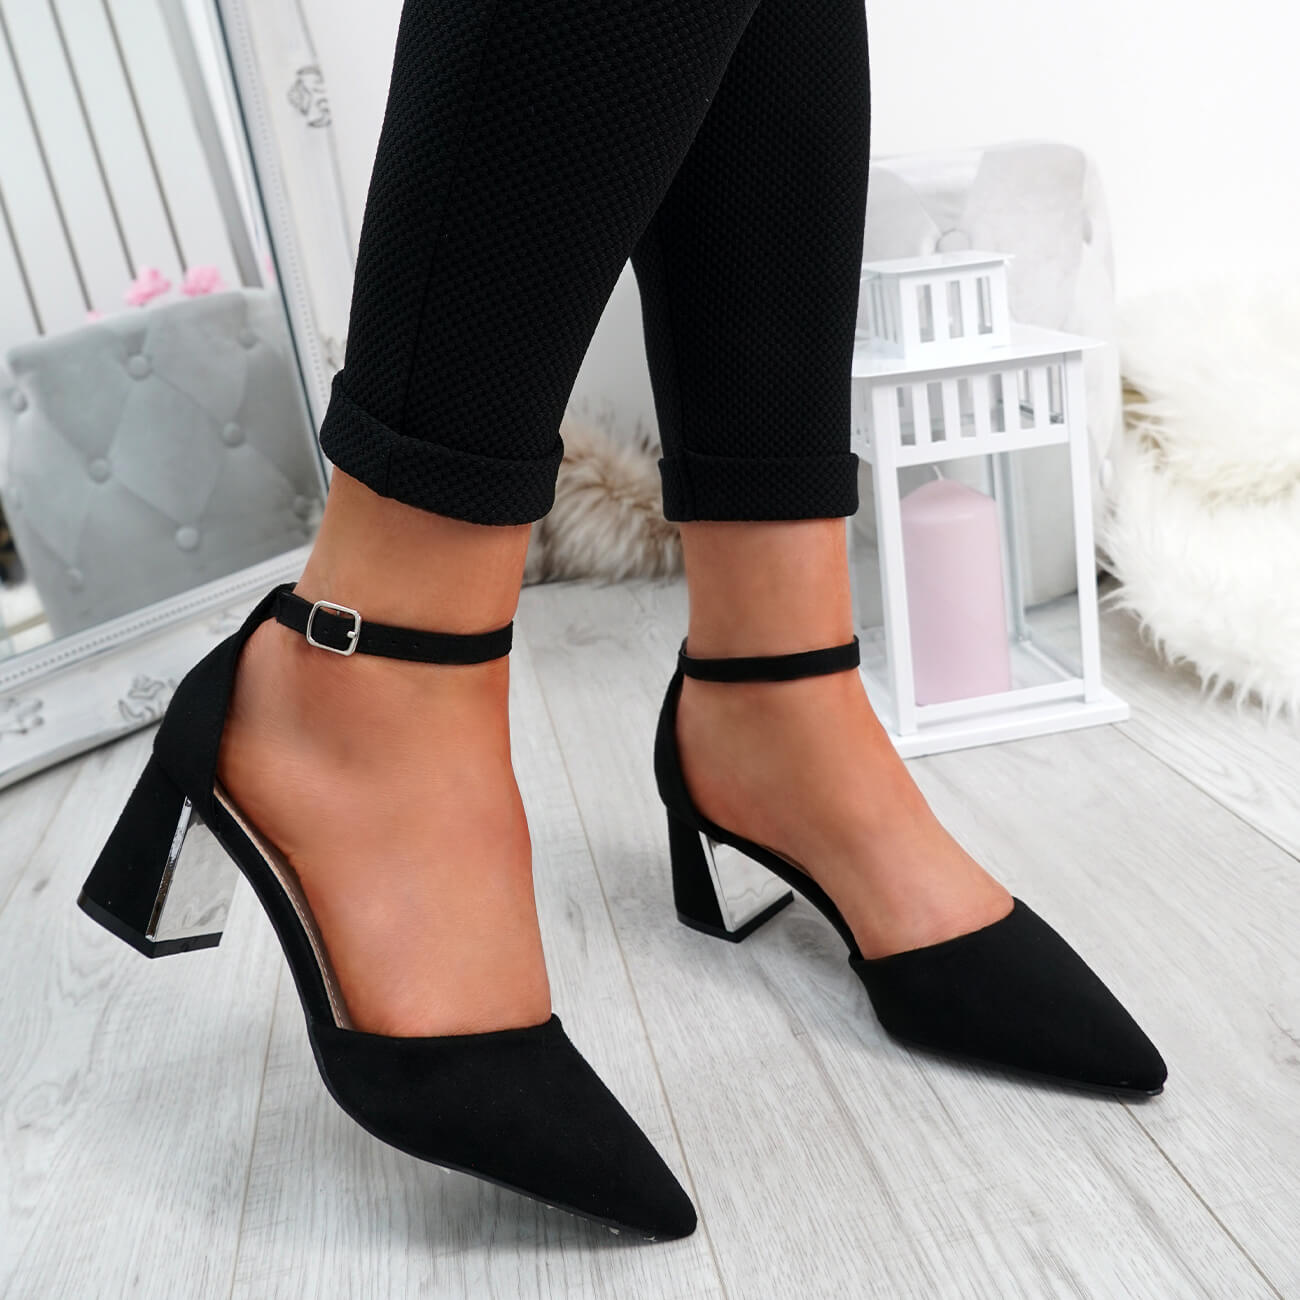 WOMENS-LADIES-ANKLE-STRAP-POINTED-HIGH-BLOCK-HEEL-PUMPS-COURT-SHOES-SIZE thumbnail 7